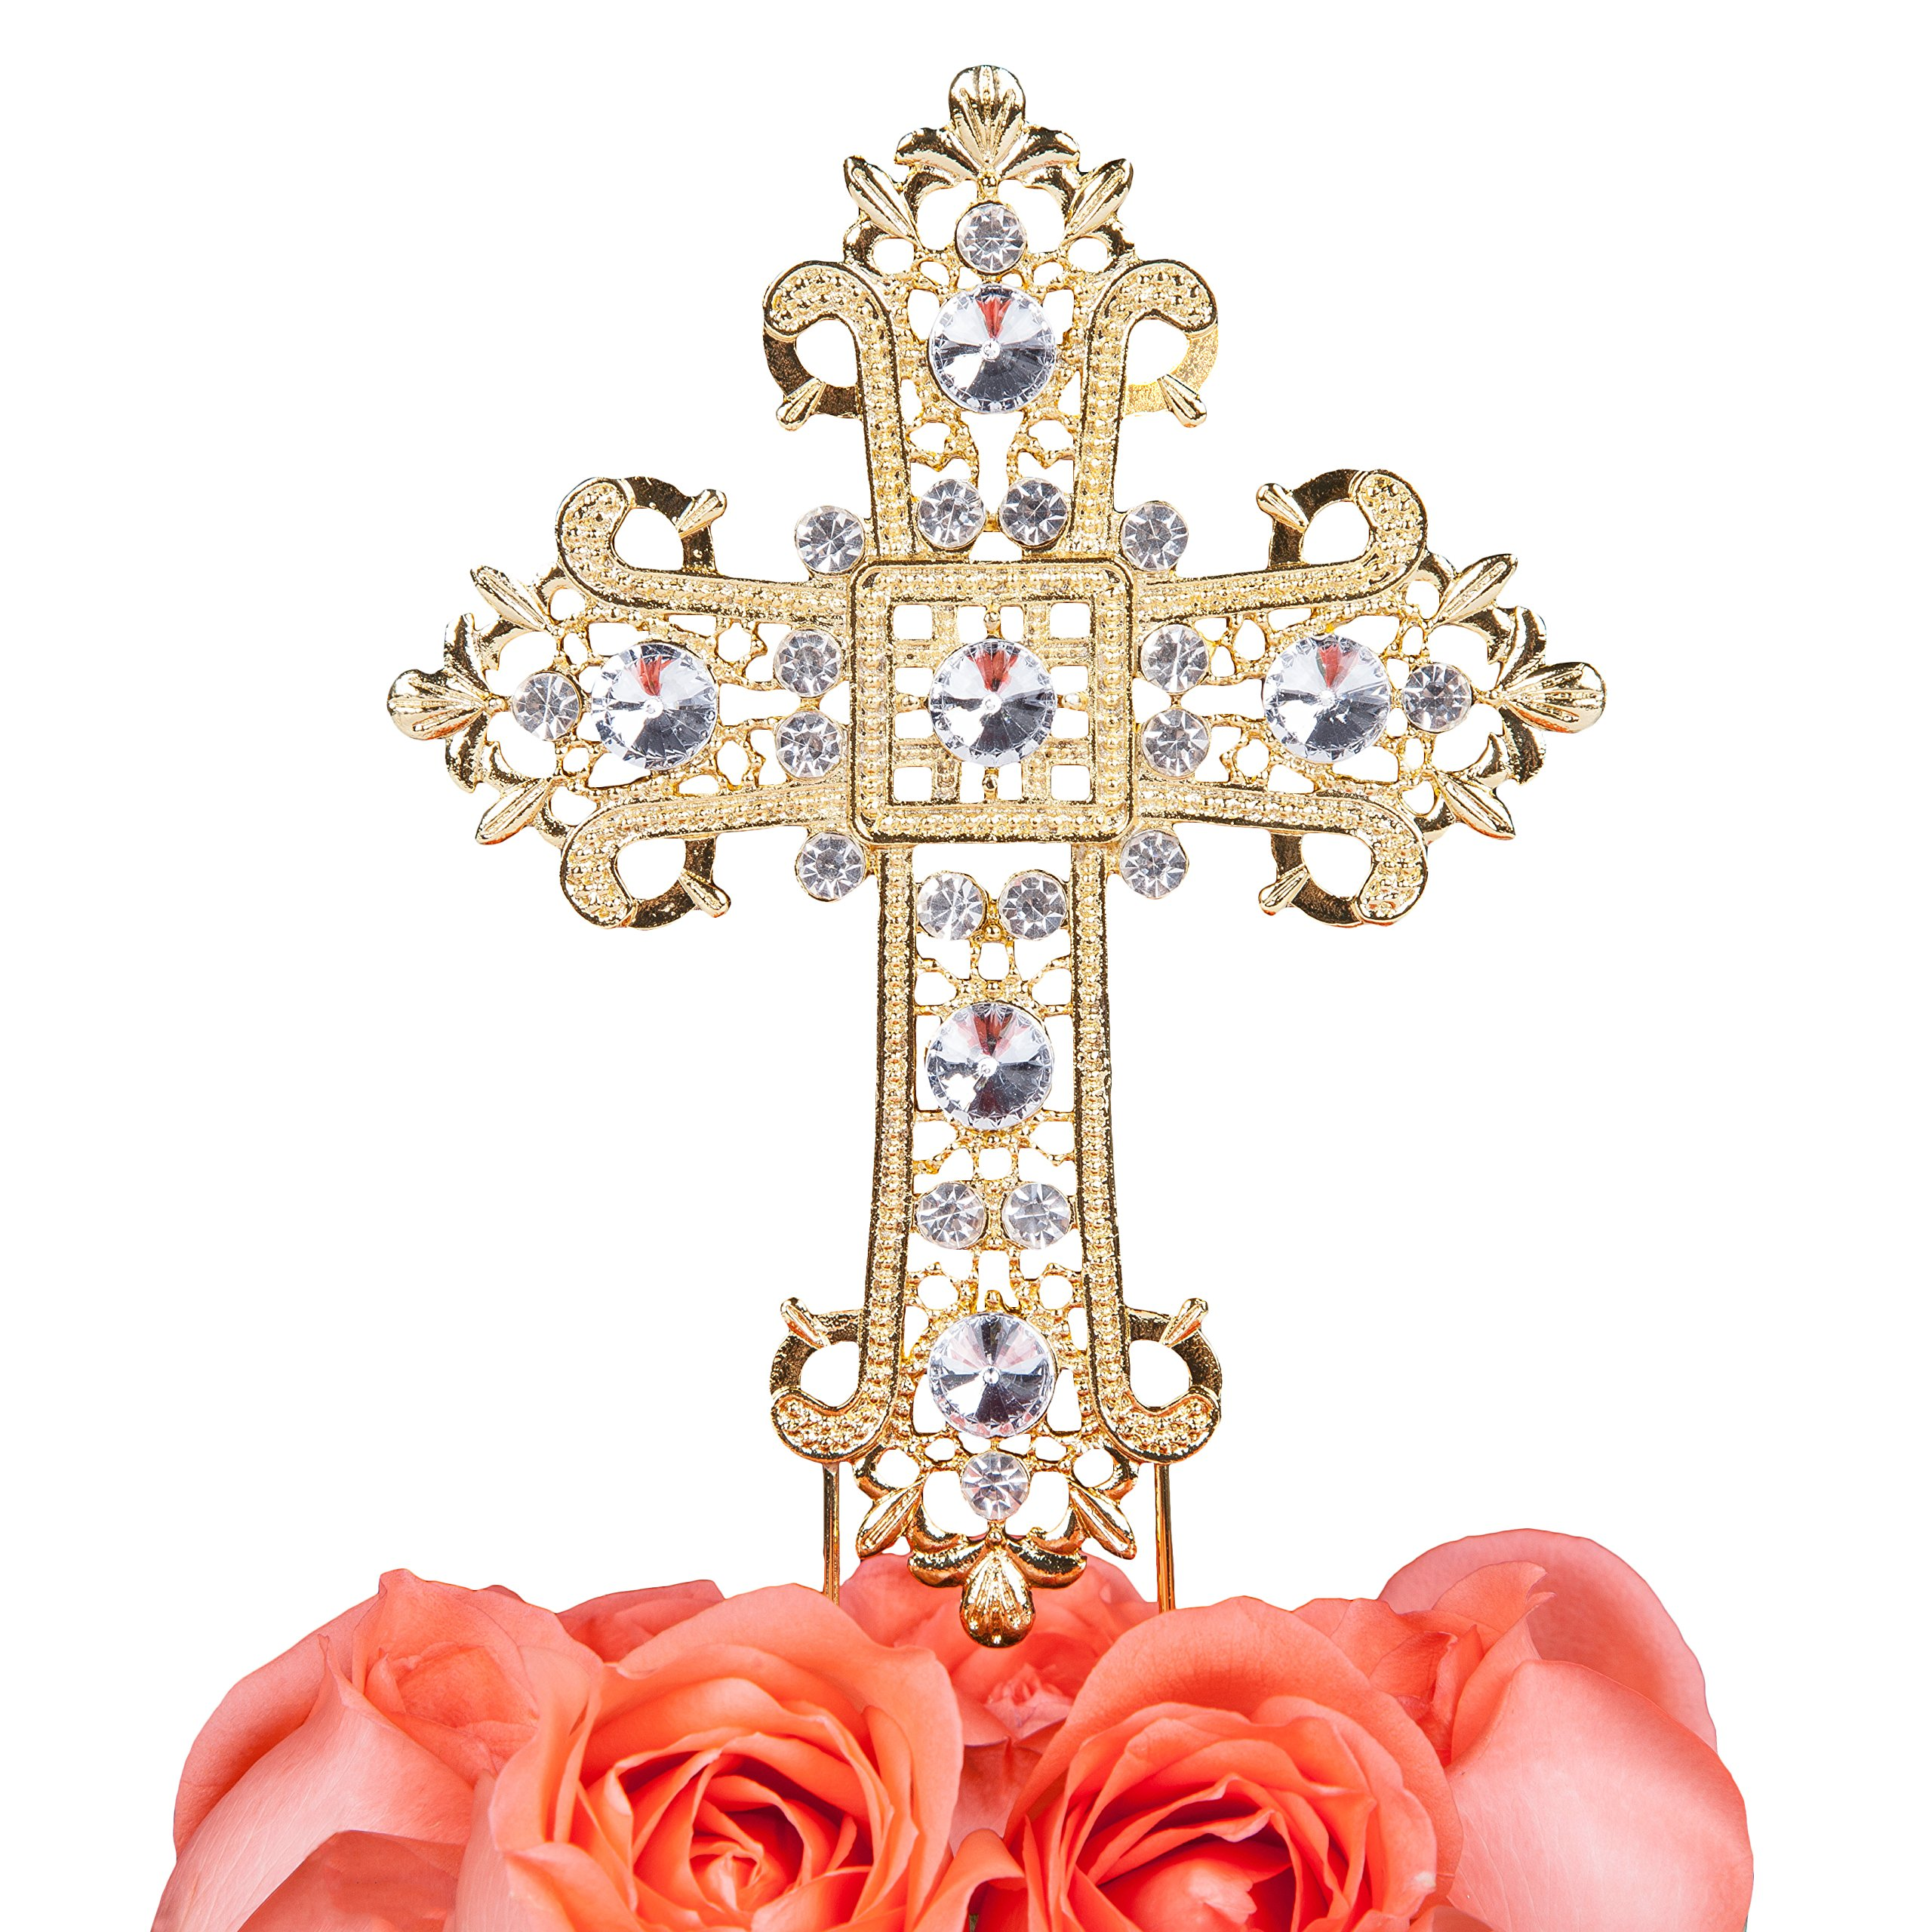 LOVENJOY Gift Box Pack Cross Rhinestone Crystal Gold Cake Decoration Topper for Wedding Religious Baptism Christening First Communion Confirmation (4.5-inch wide) by LOVENJOY